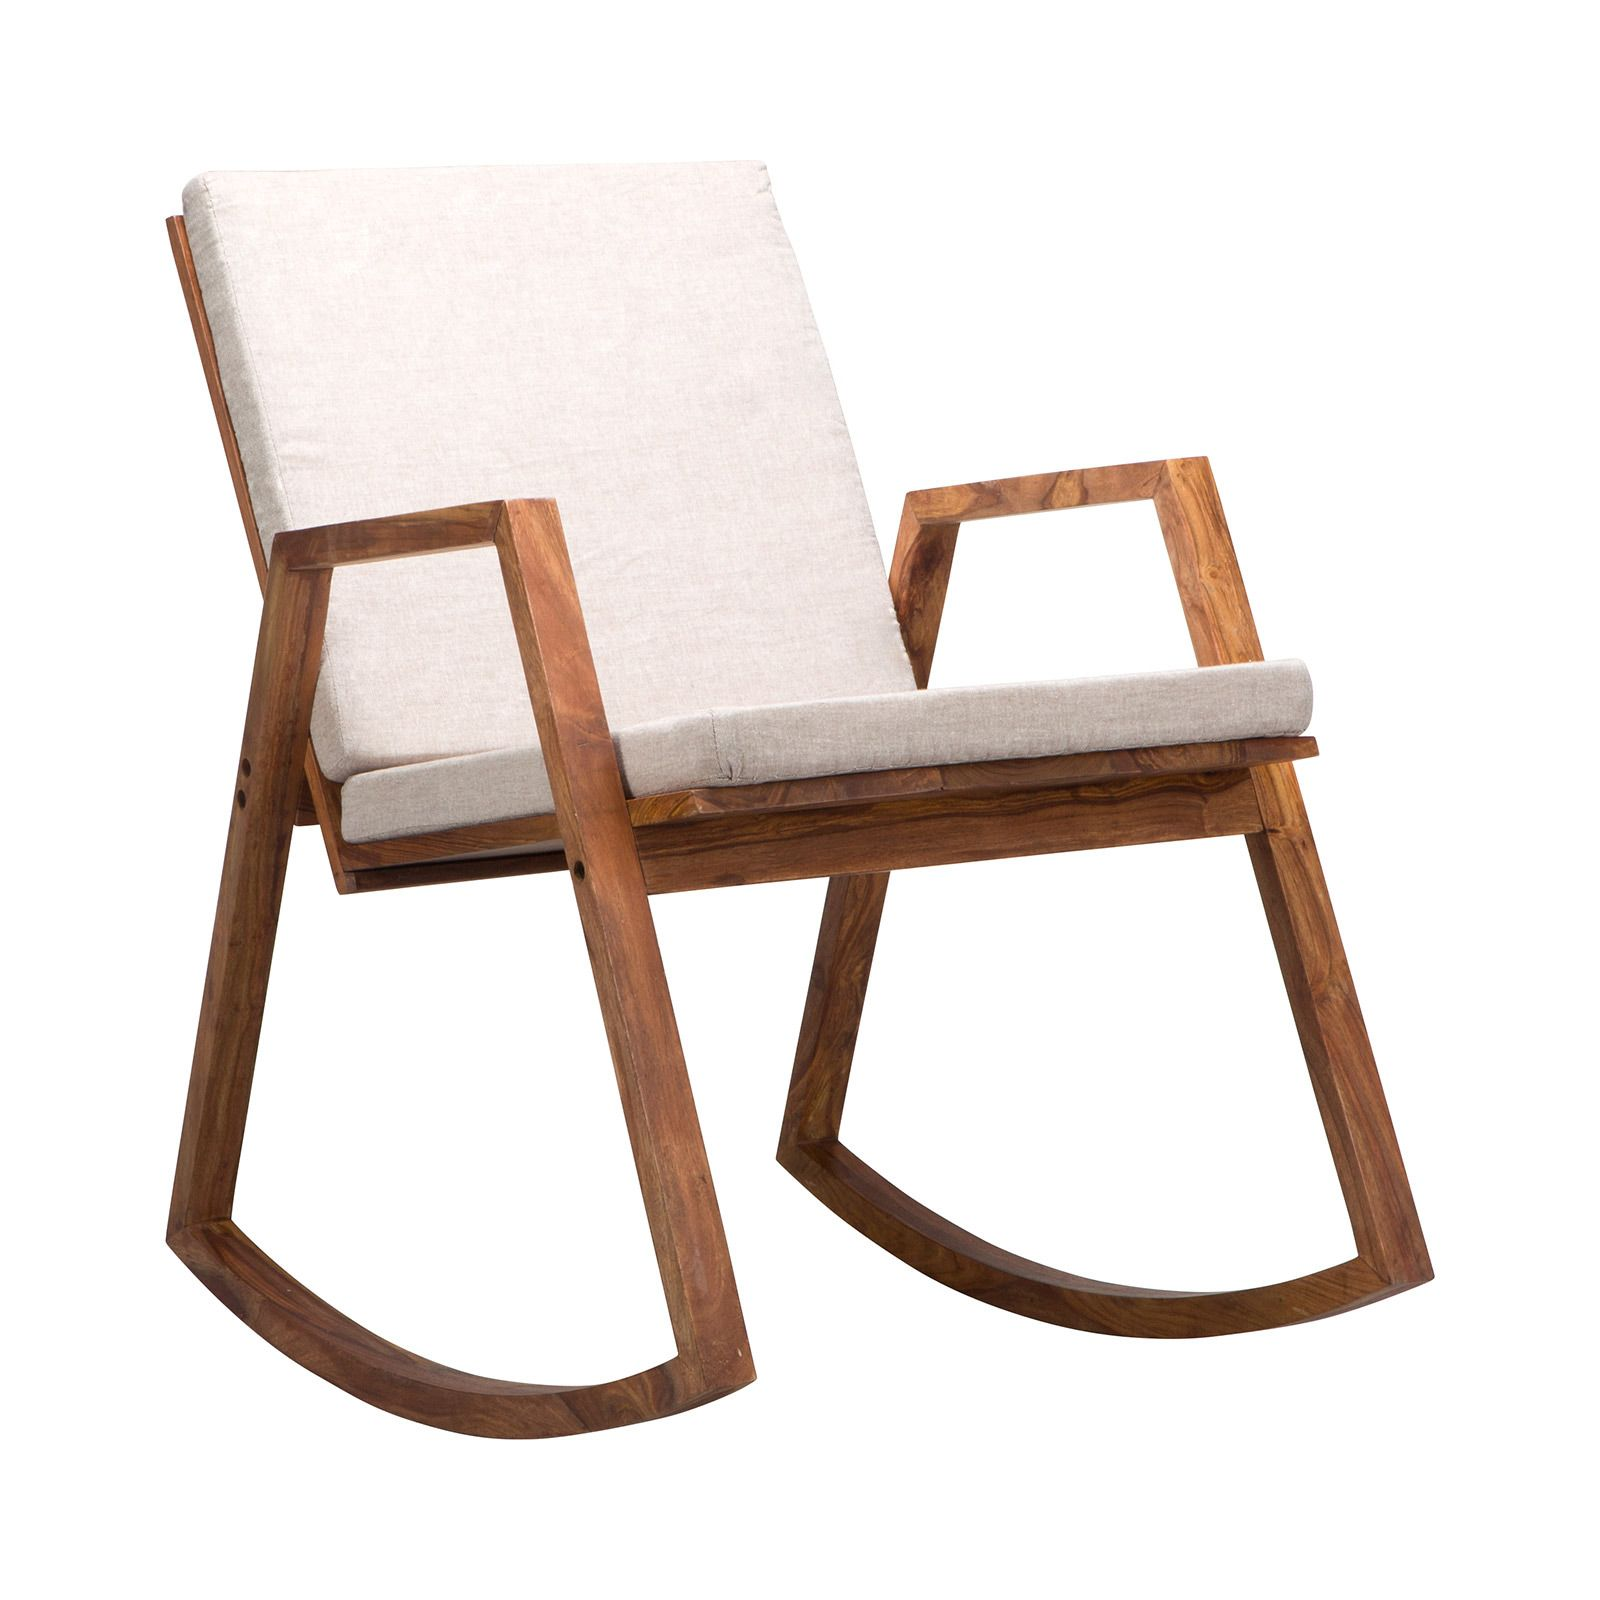 Admirable Furniture And Decor For The Modern Lifestyle Modern Beatyapartments Chair Design Images Beatyapartmentscom